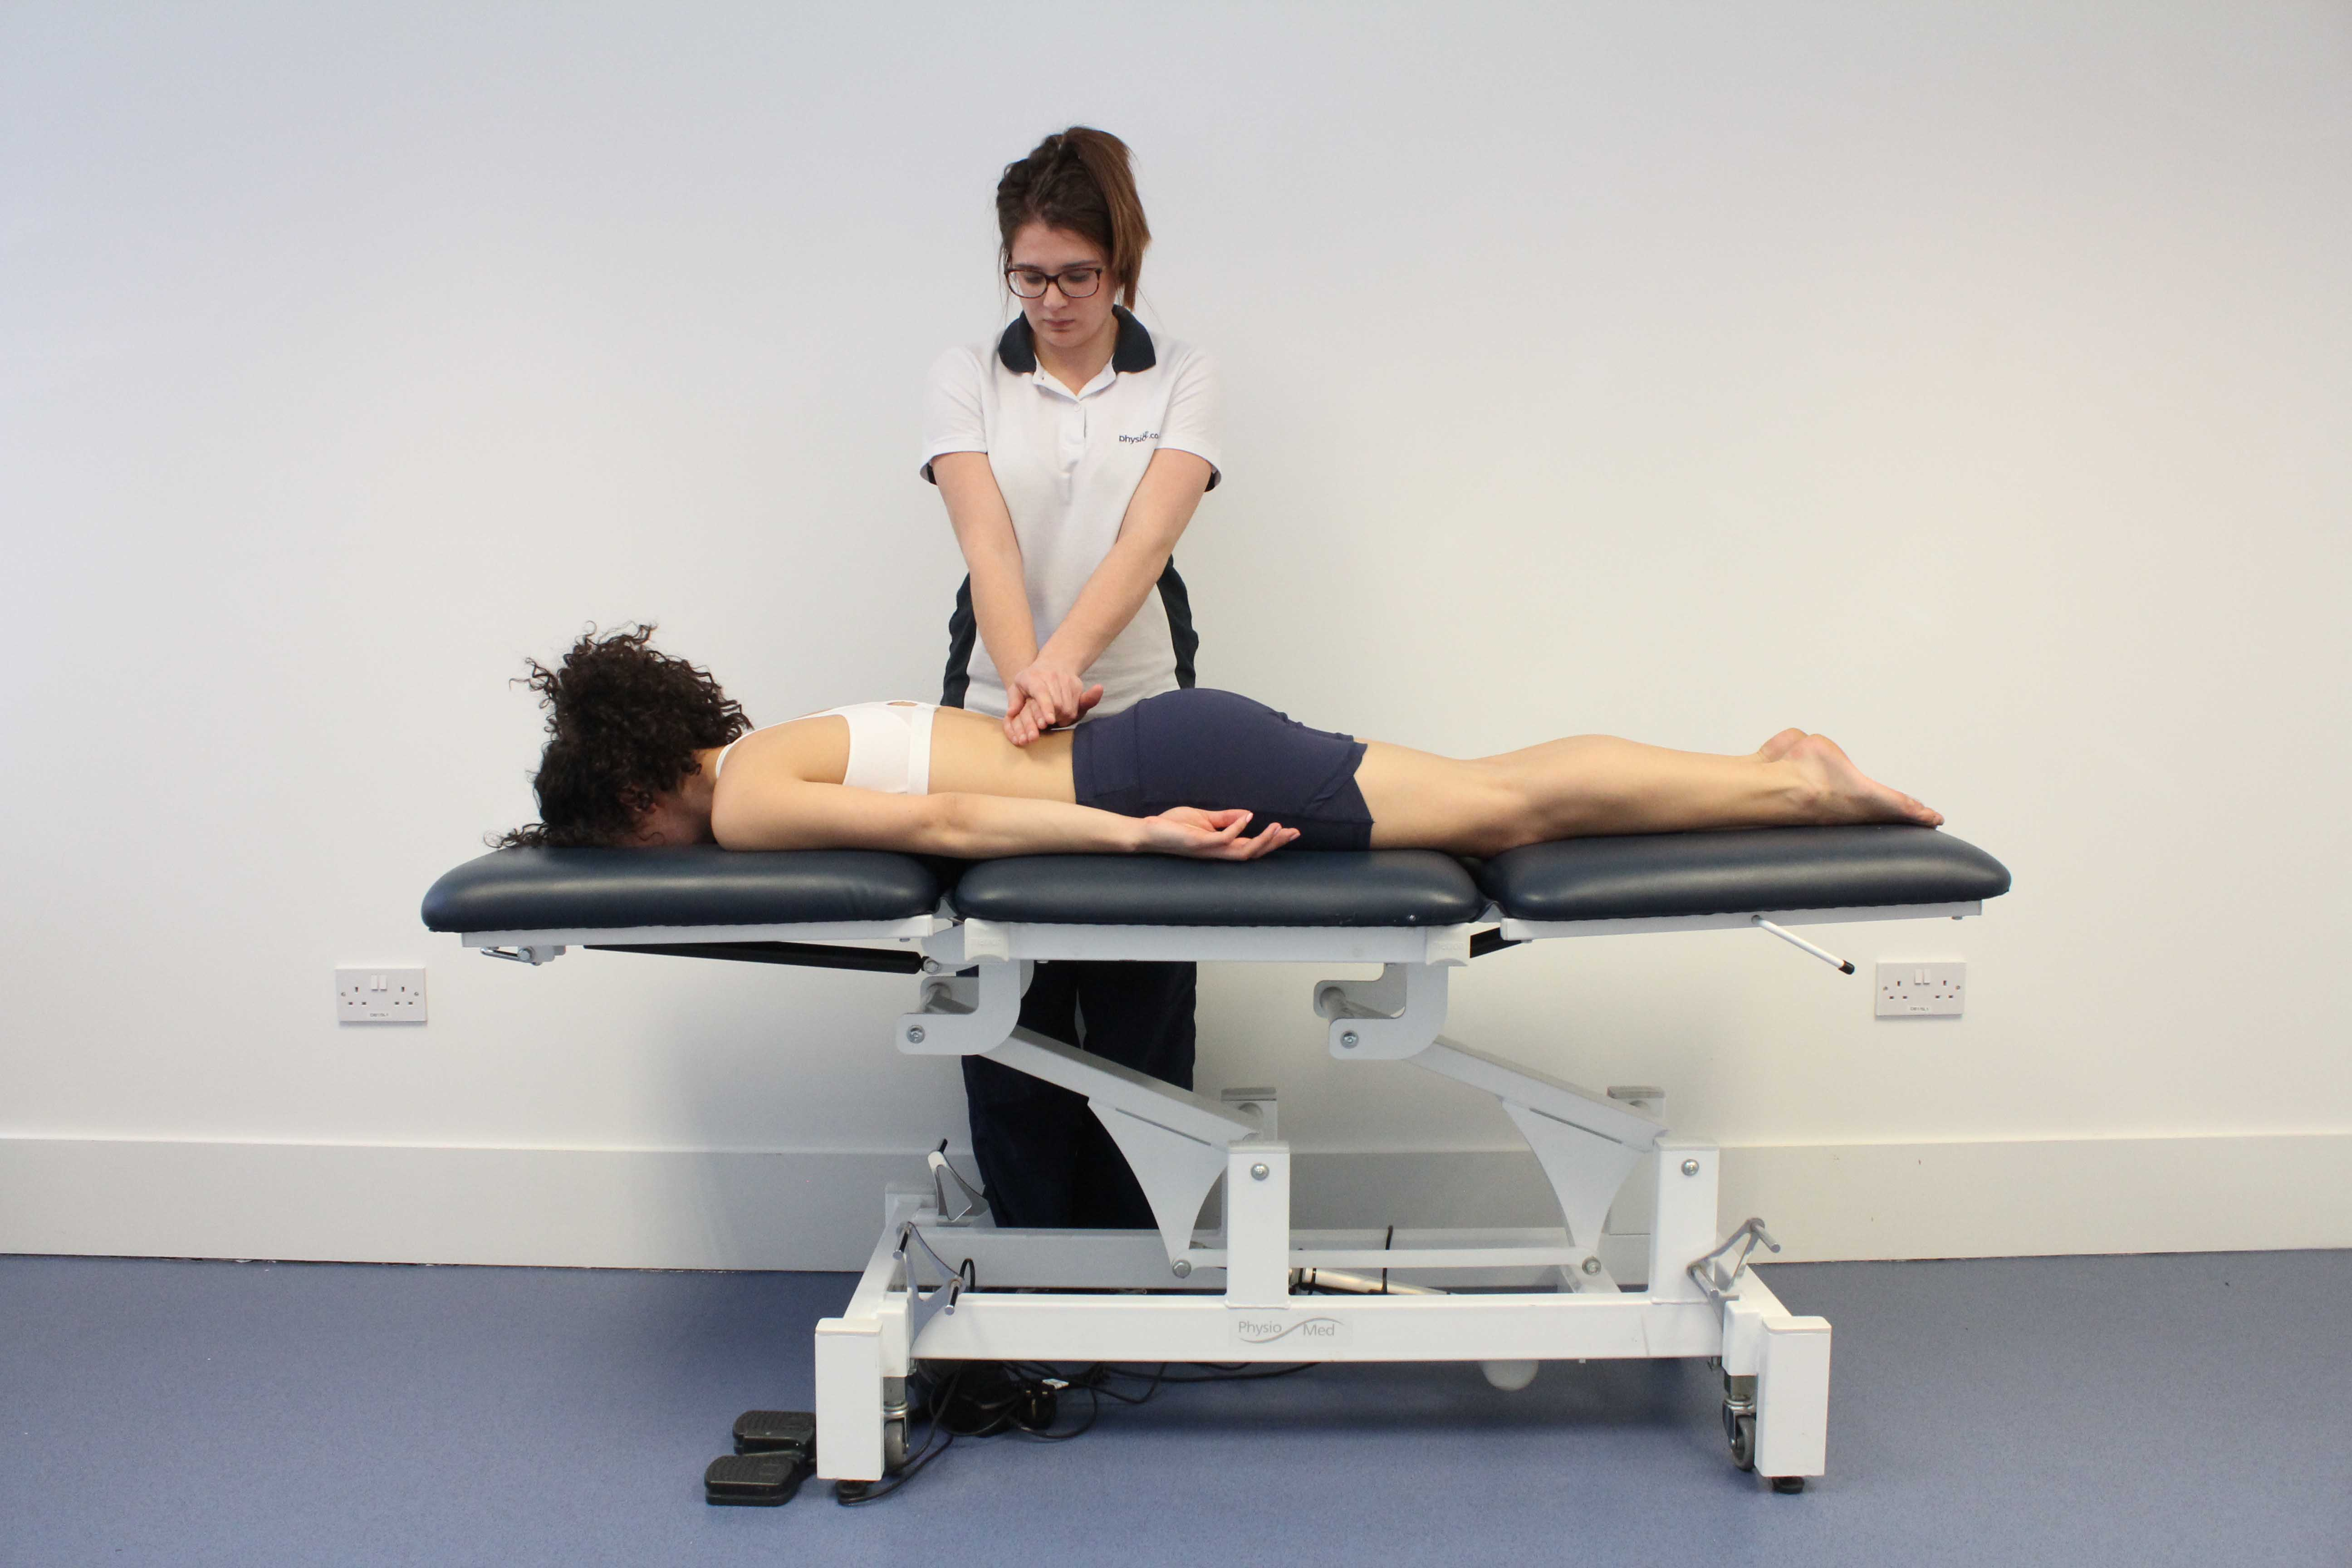 Mobilisations of the vertebrea in the lower back by a physiotherapist